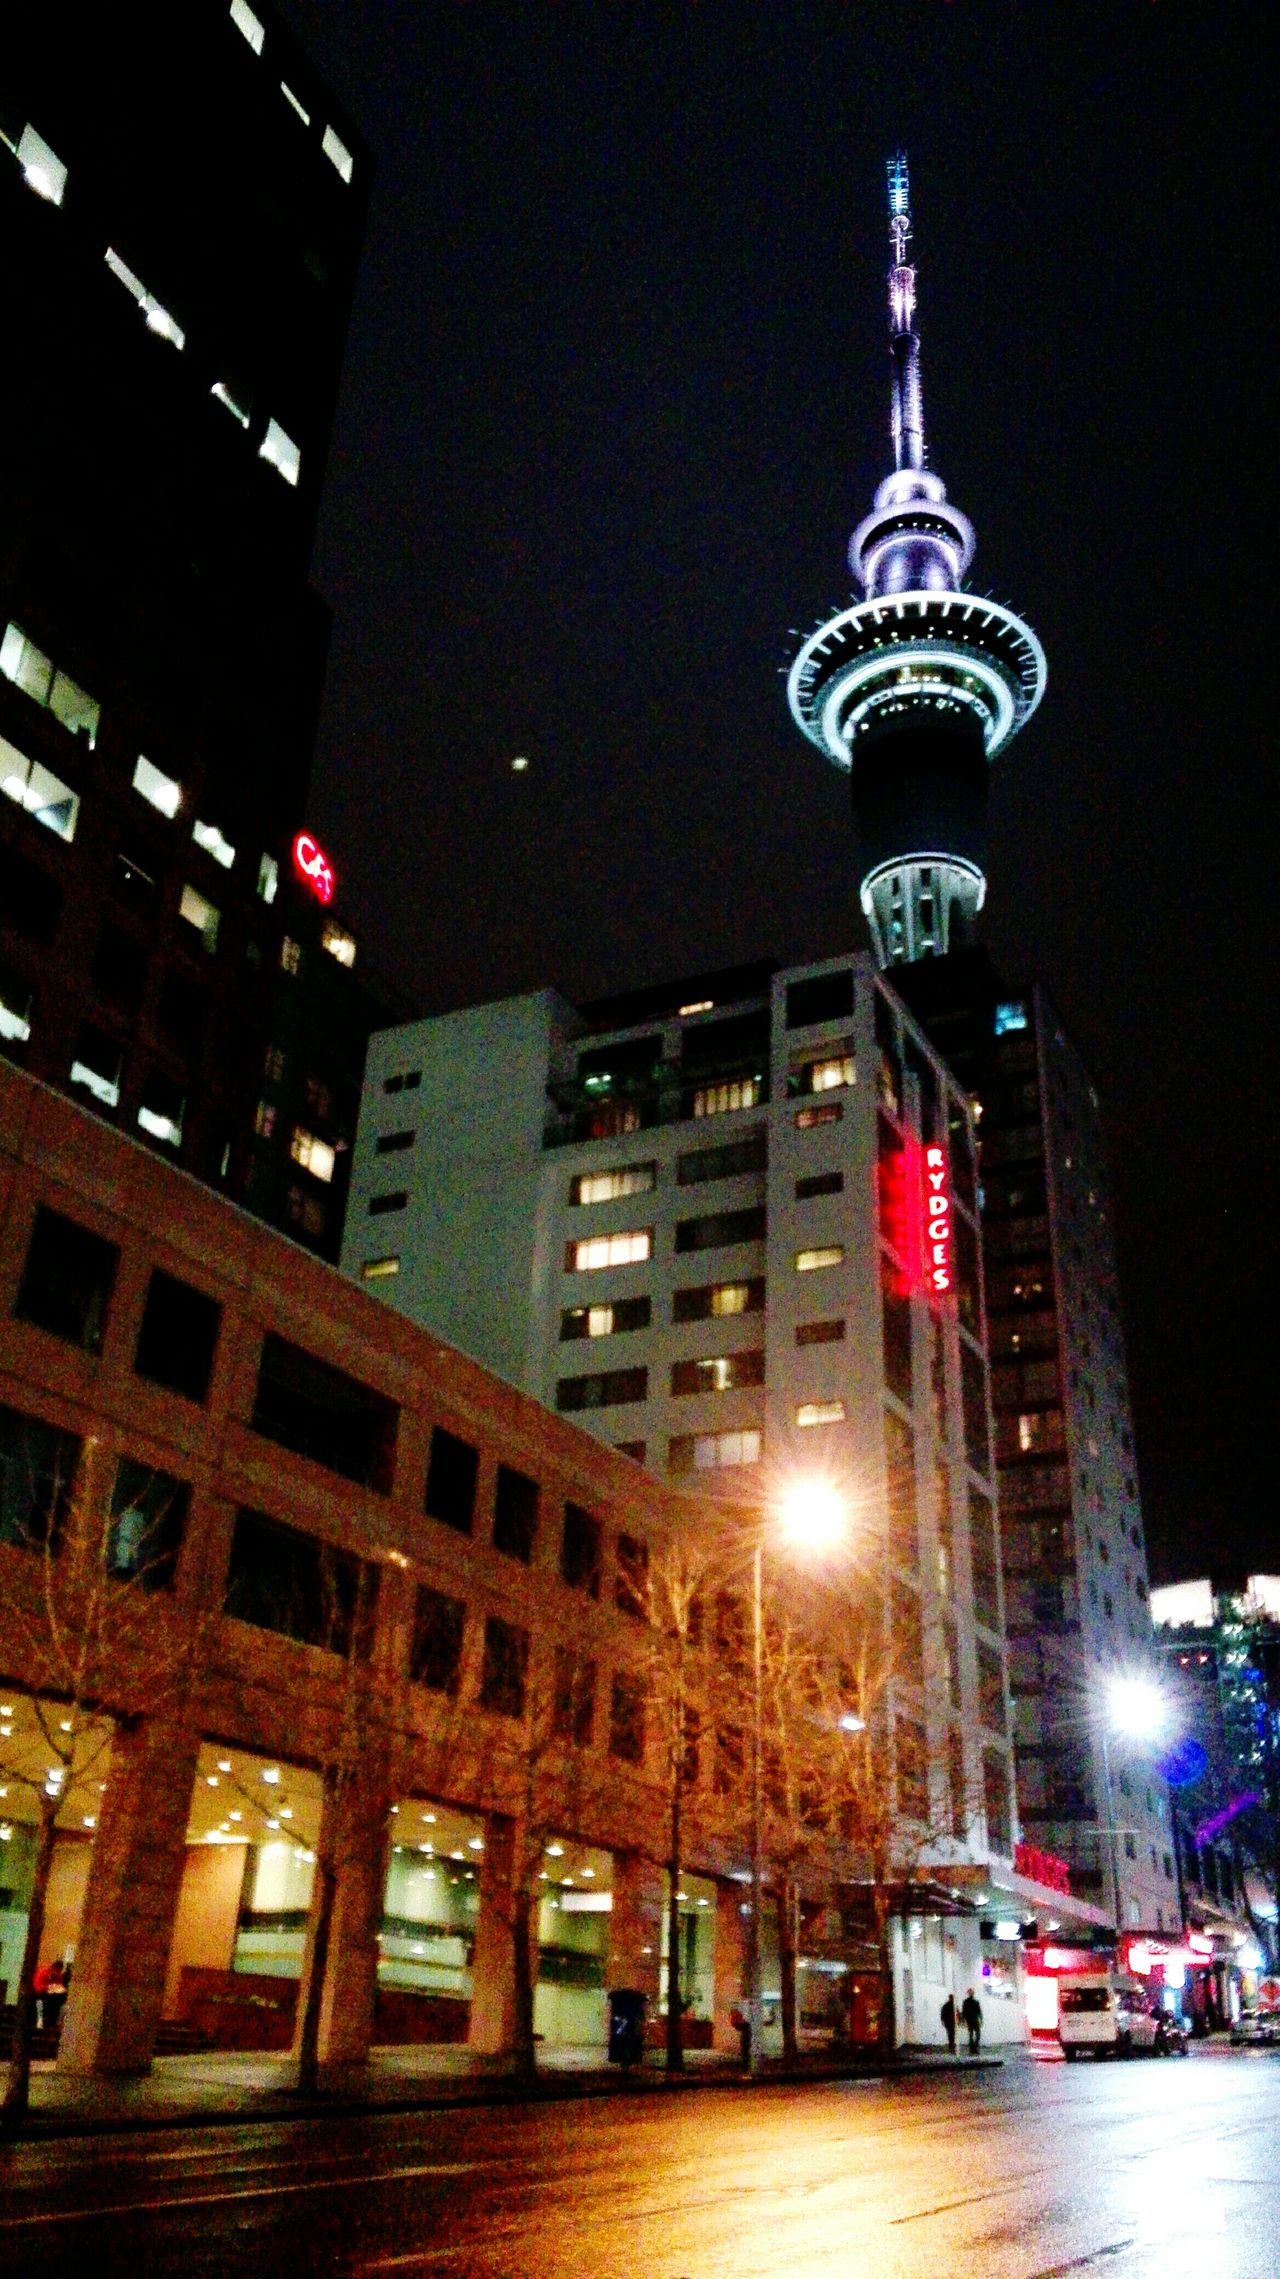 Standing Proud n Lookin' Pretty Auckland City Sky Tower Auckland Night Lights City Life CBD Rydges Hotel Federal Street Urban Lifestyle